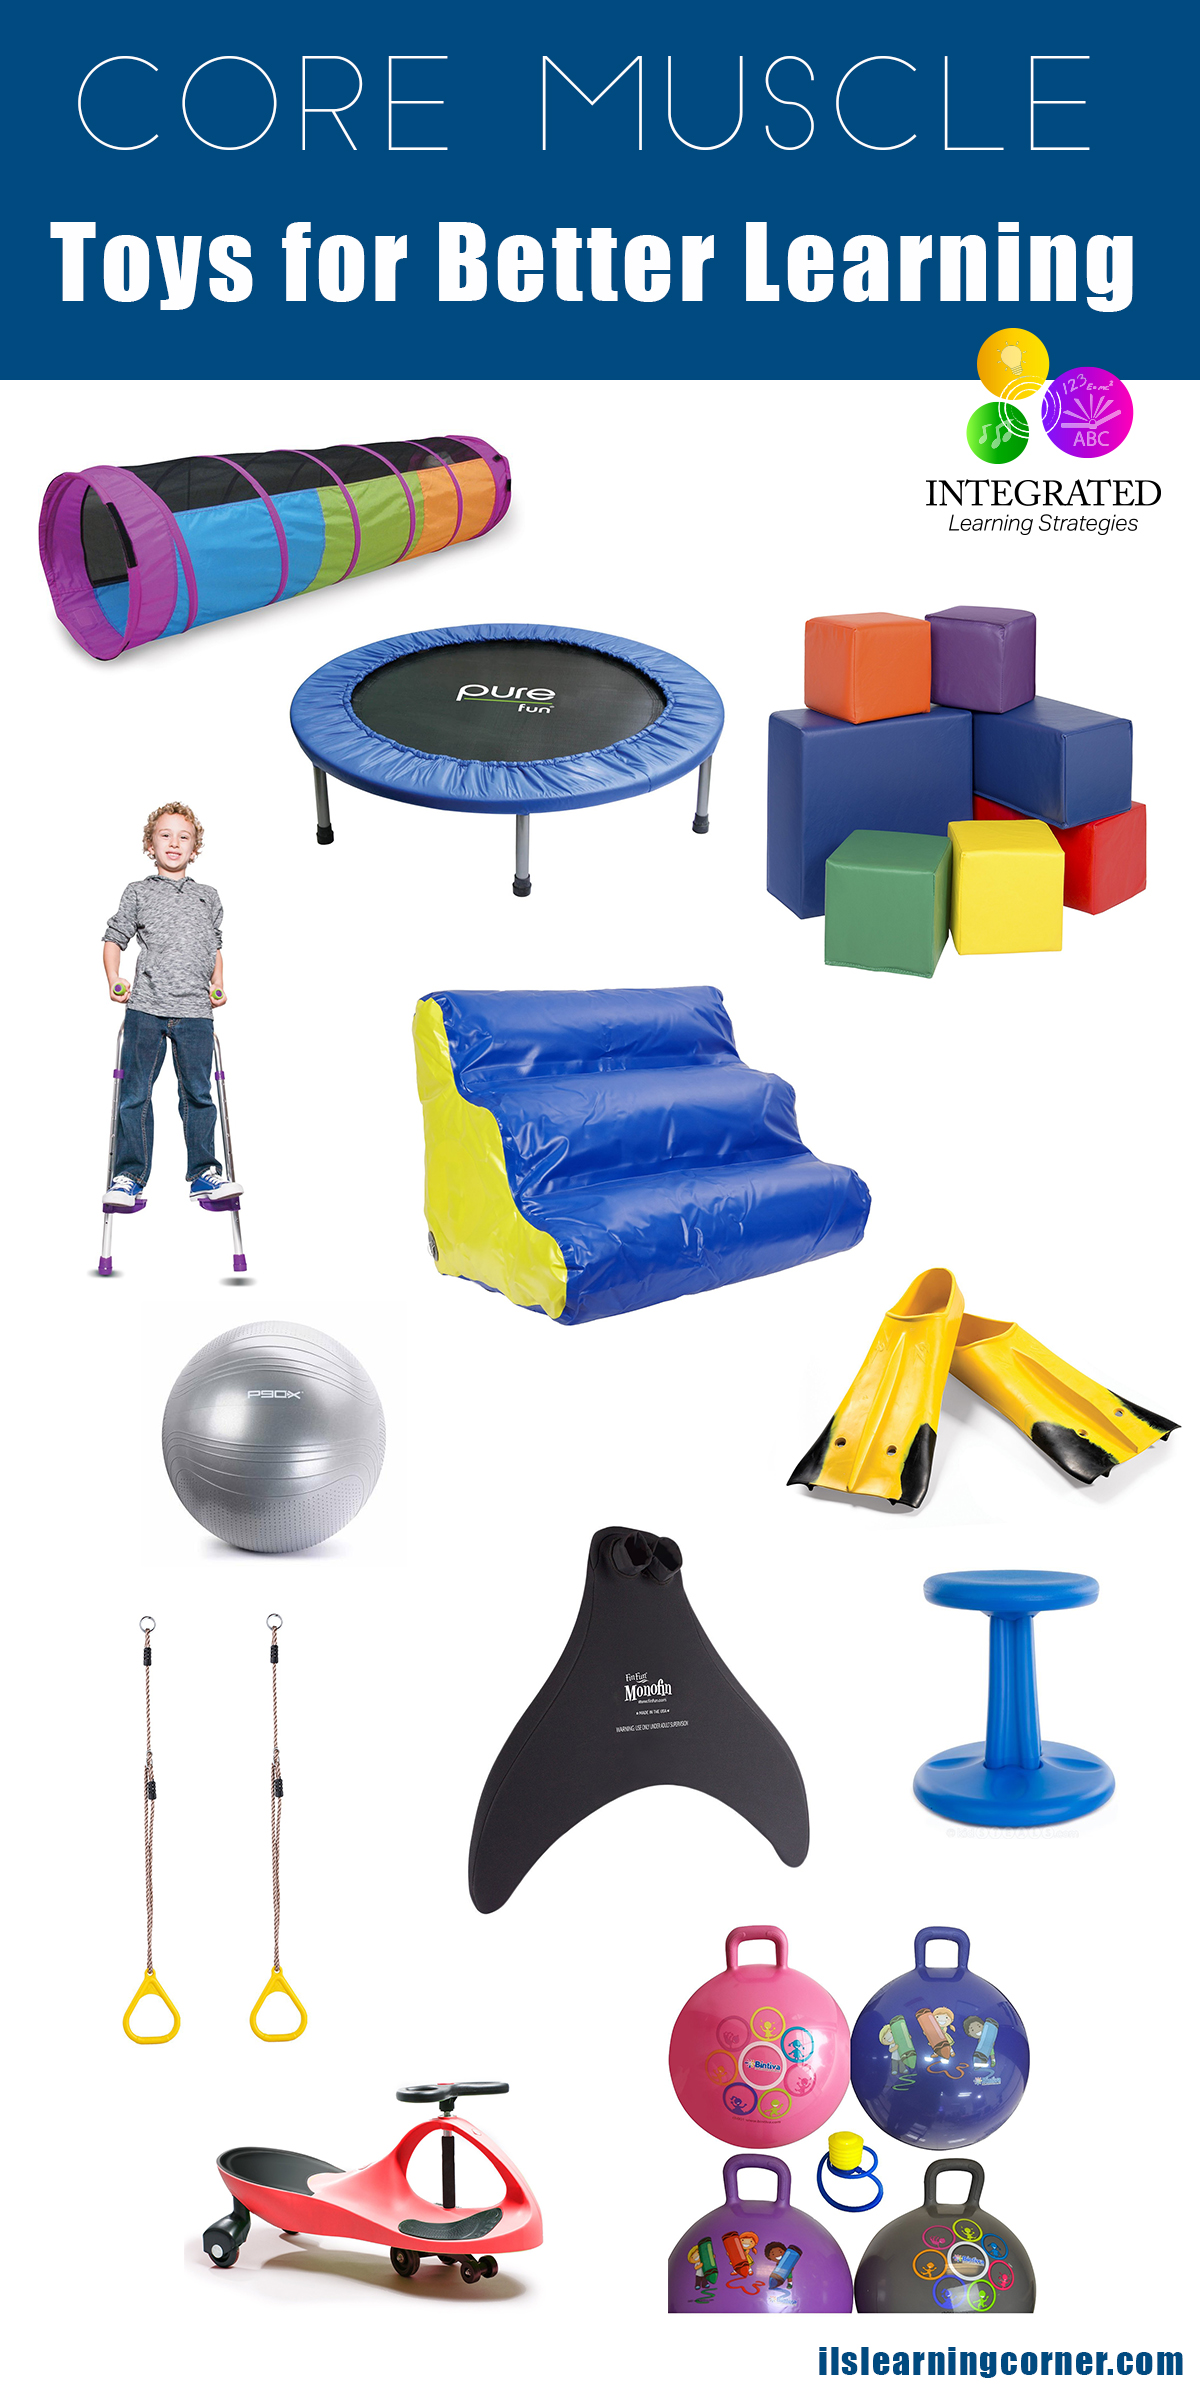 CORE MUSCLE Toys for Building Posture Core Muscle Motor Skills